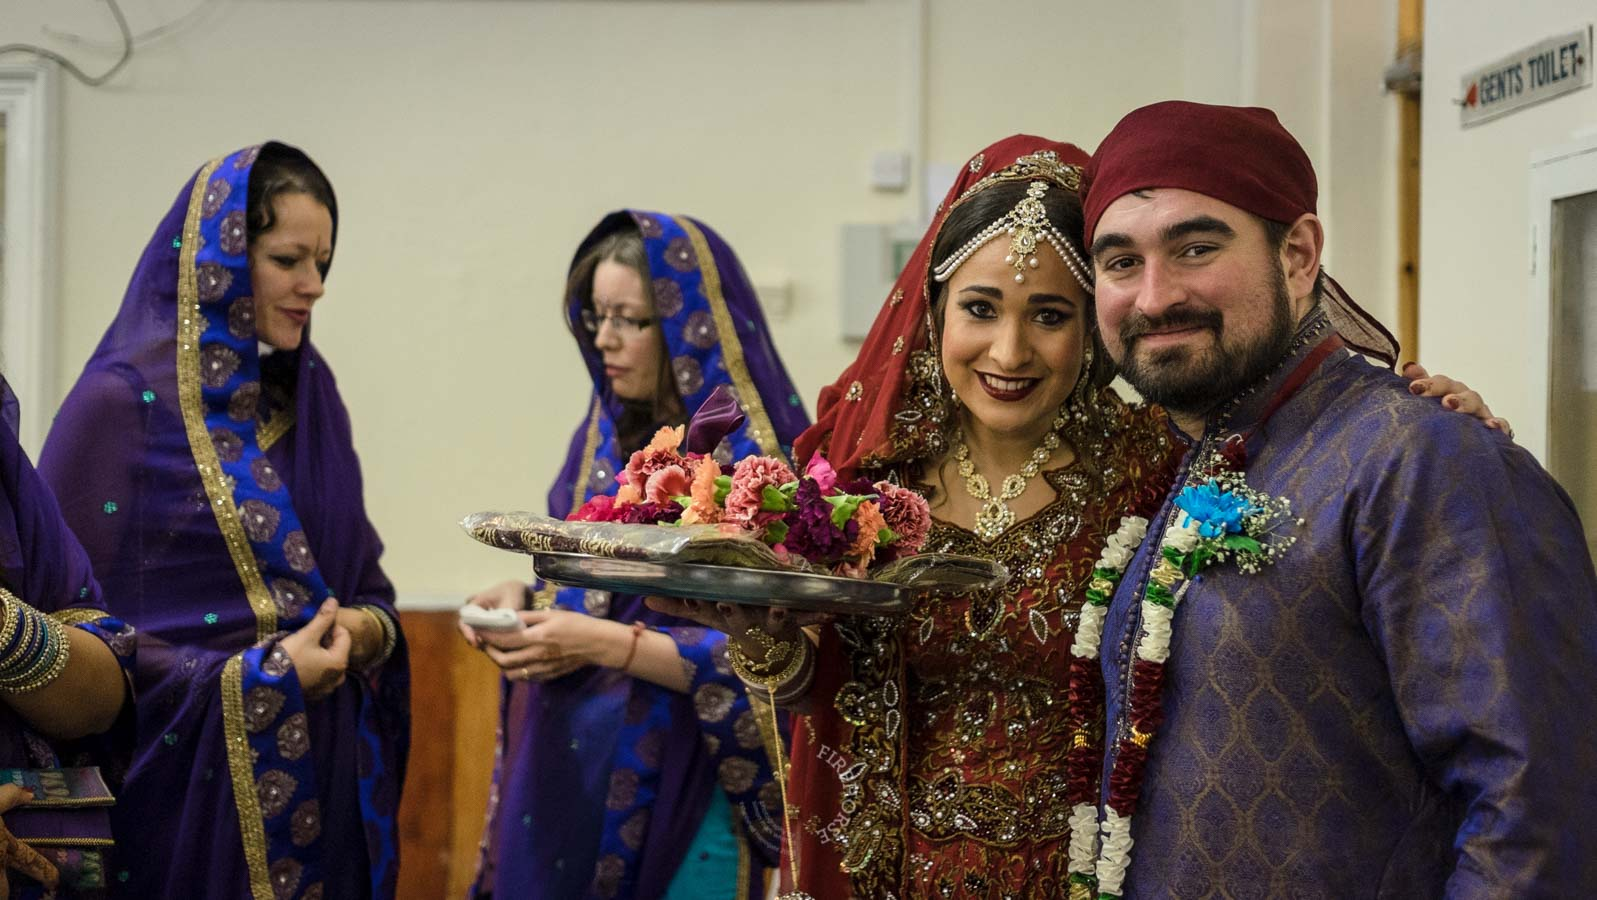 sikh-wedding-photography-037